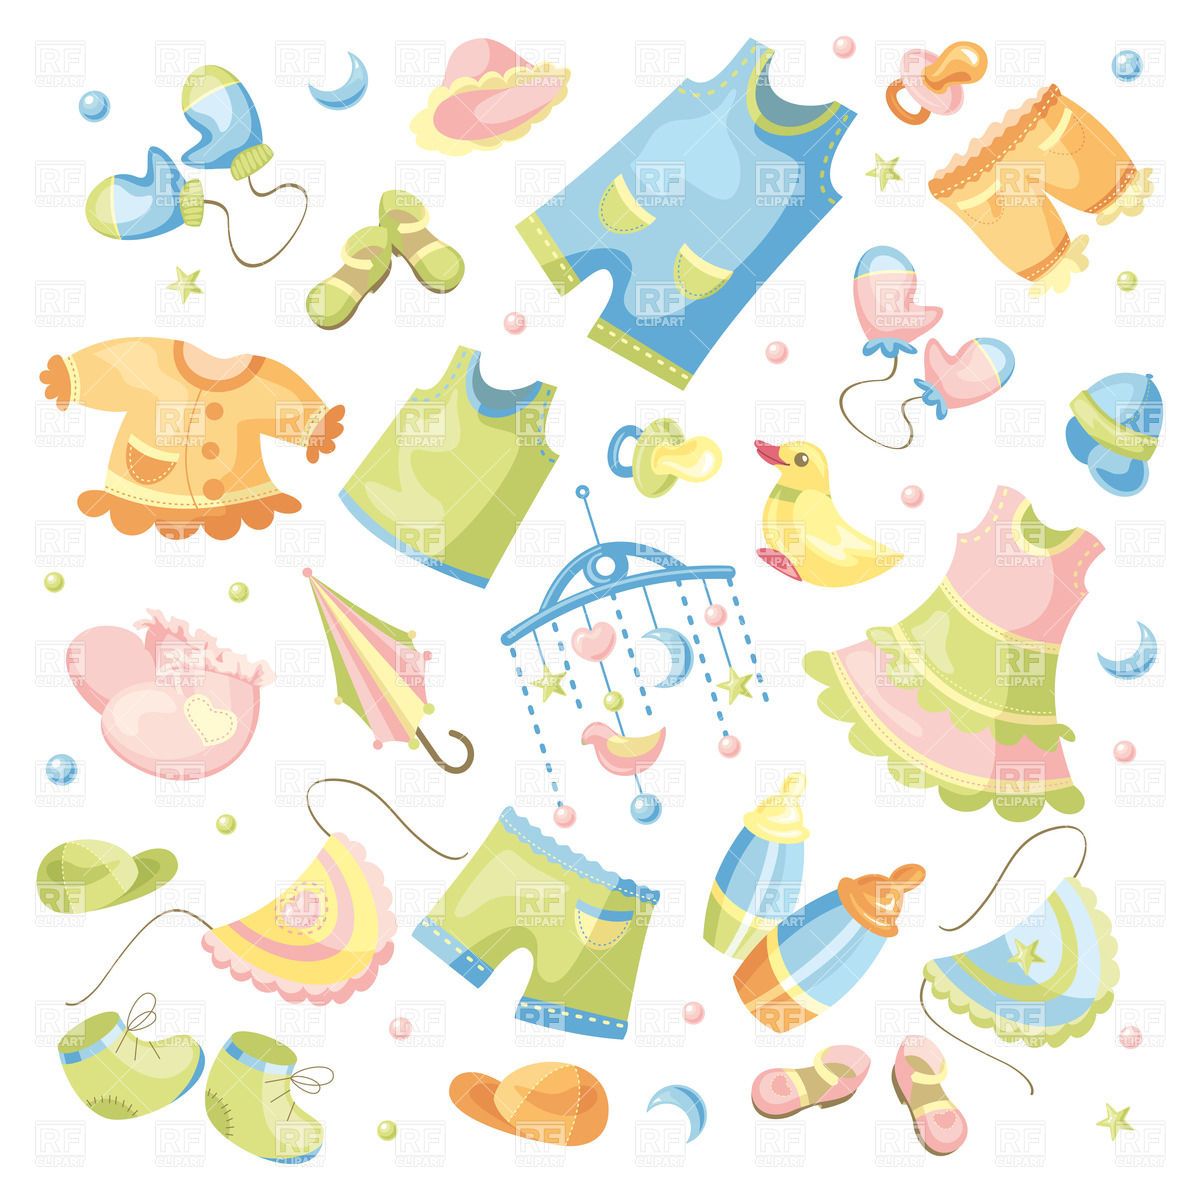 Baby clothing and accessories Stock Vector Image.